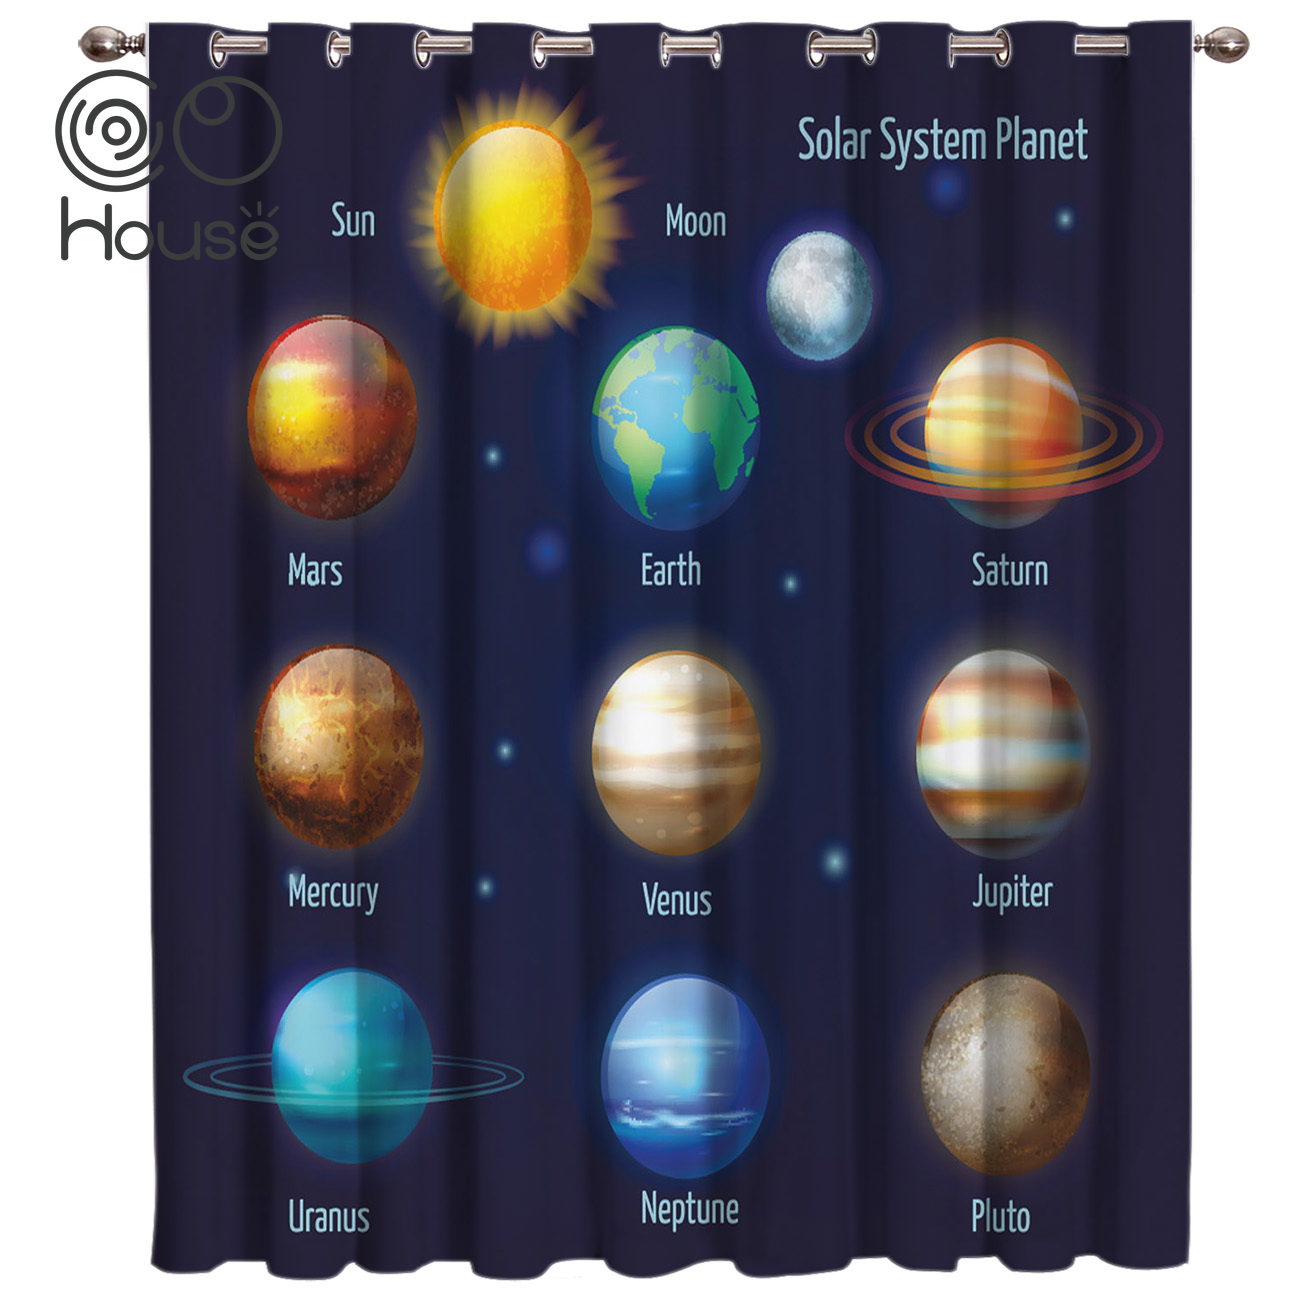 CoCoHouse Galaxy Solar System Planet Window Treatments Curtains Valance Living Room Bedroom Kitchen Indoor Kids Curtain Panels